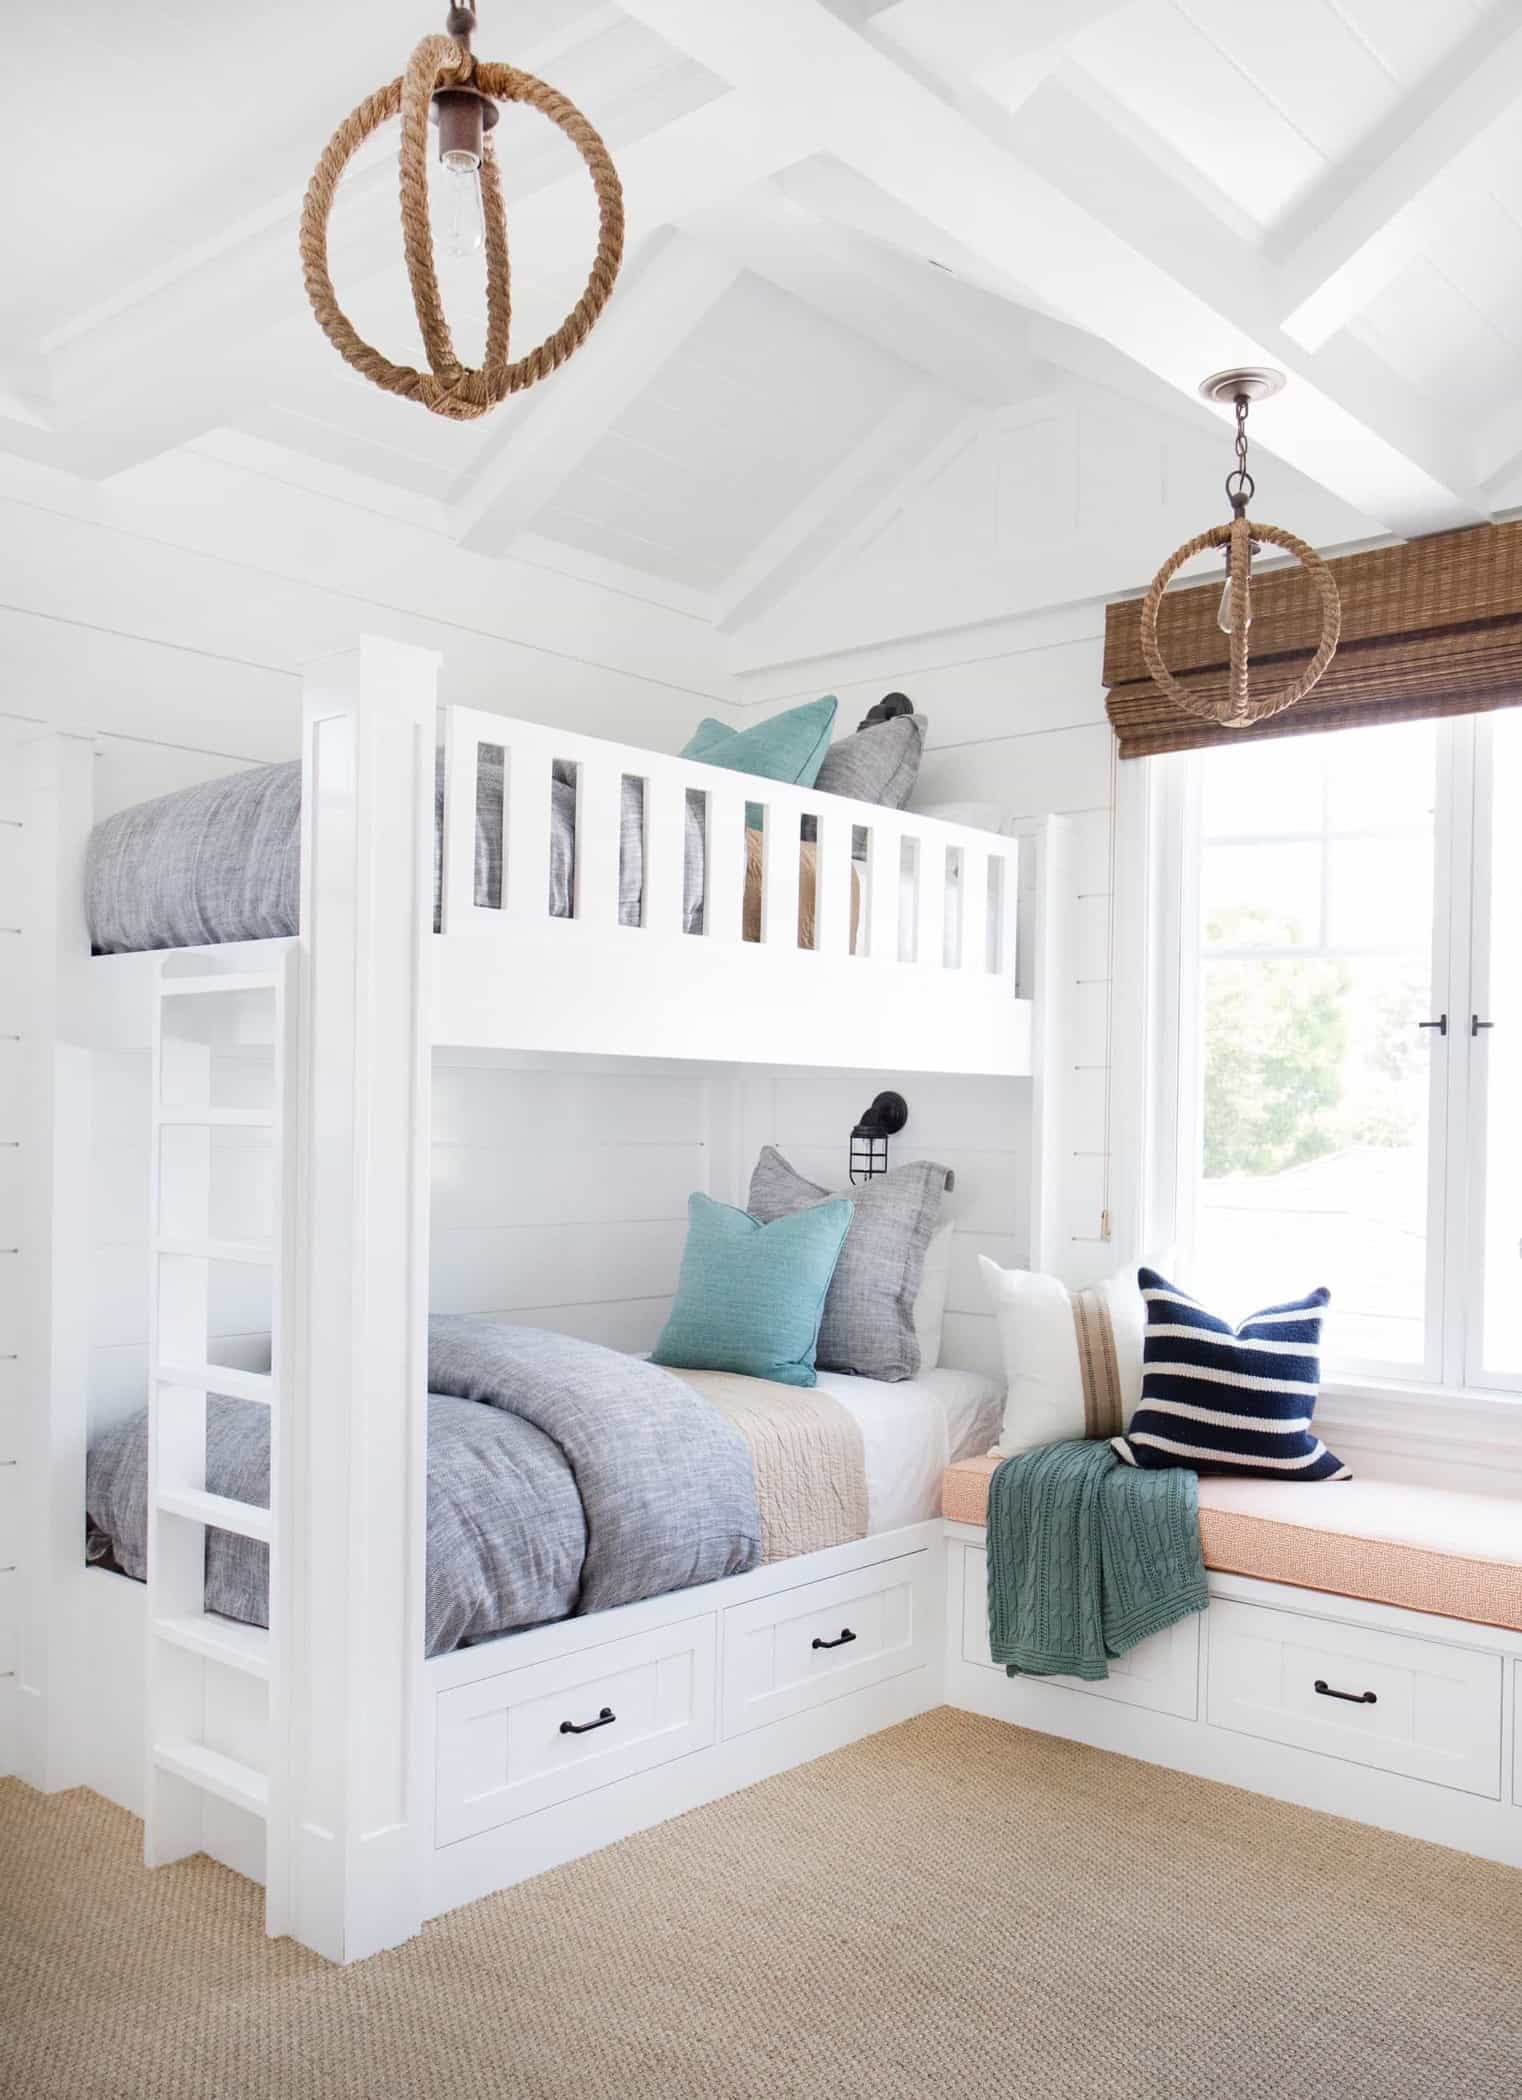 Featured Image of Bright Kids Room With Soft Bursts Of Color